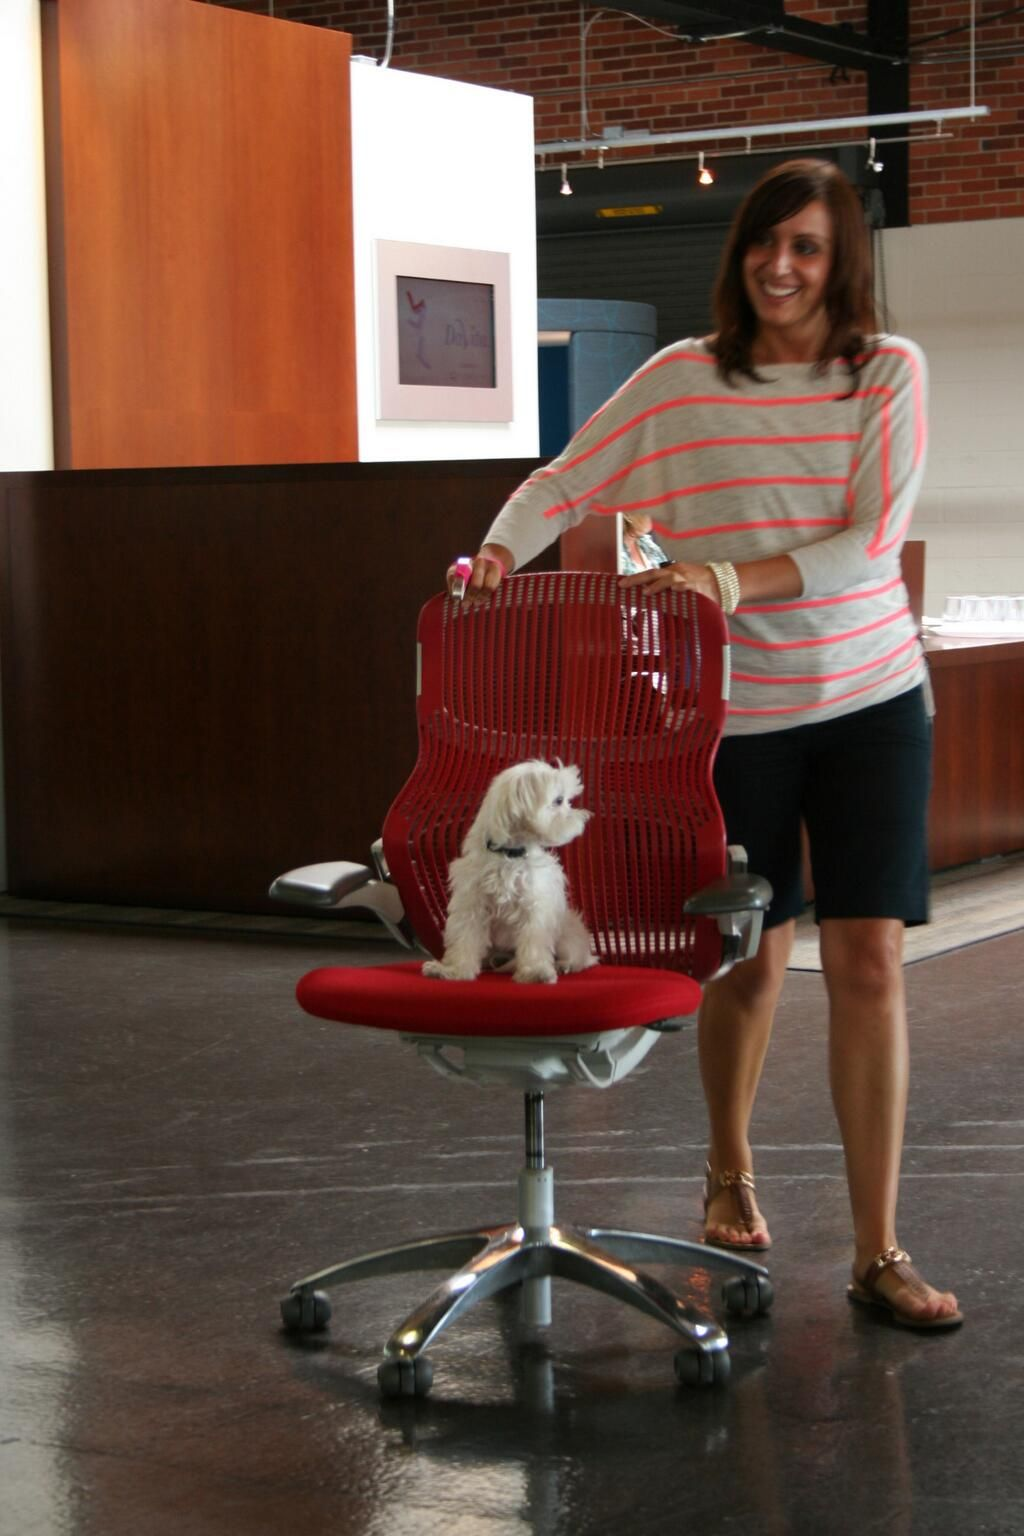 This adorable pup looks comfortable in the Generation by Knoll!  This image comes to us from our friends at Workplace Elements.